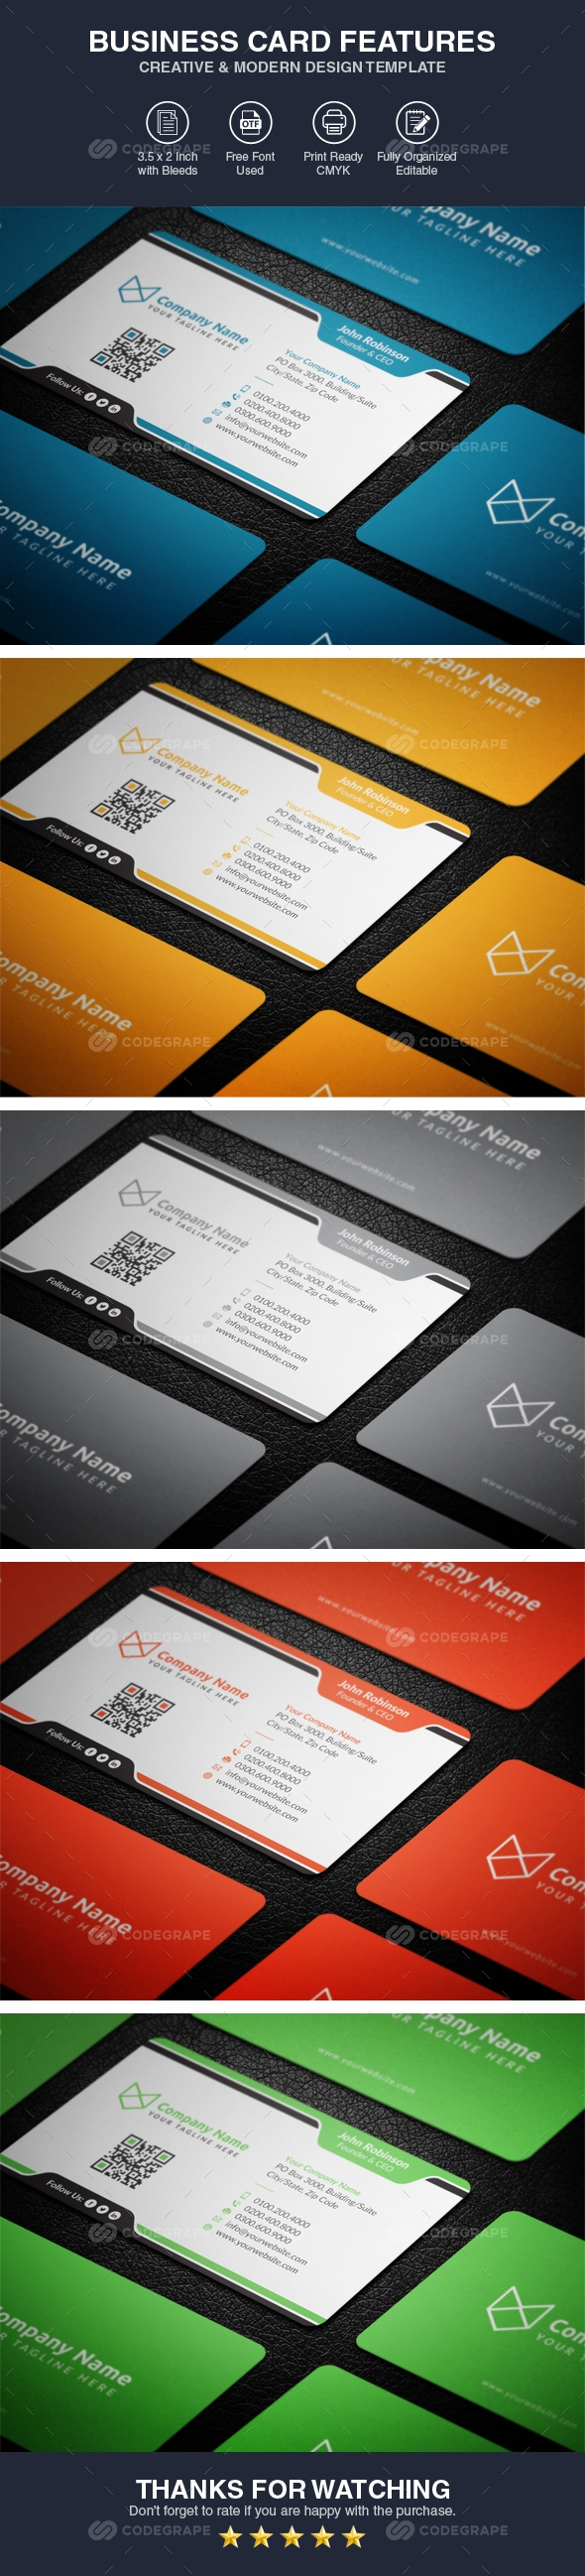 Corporate Business Card Template Vol 02